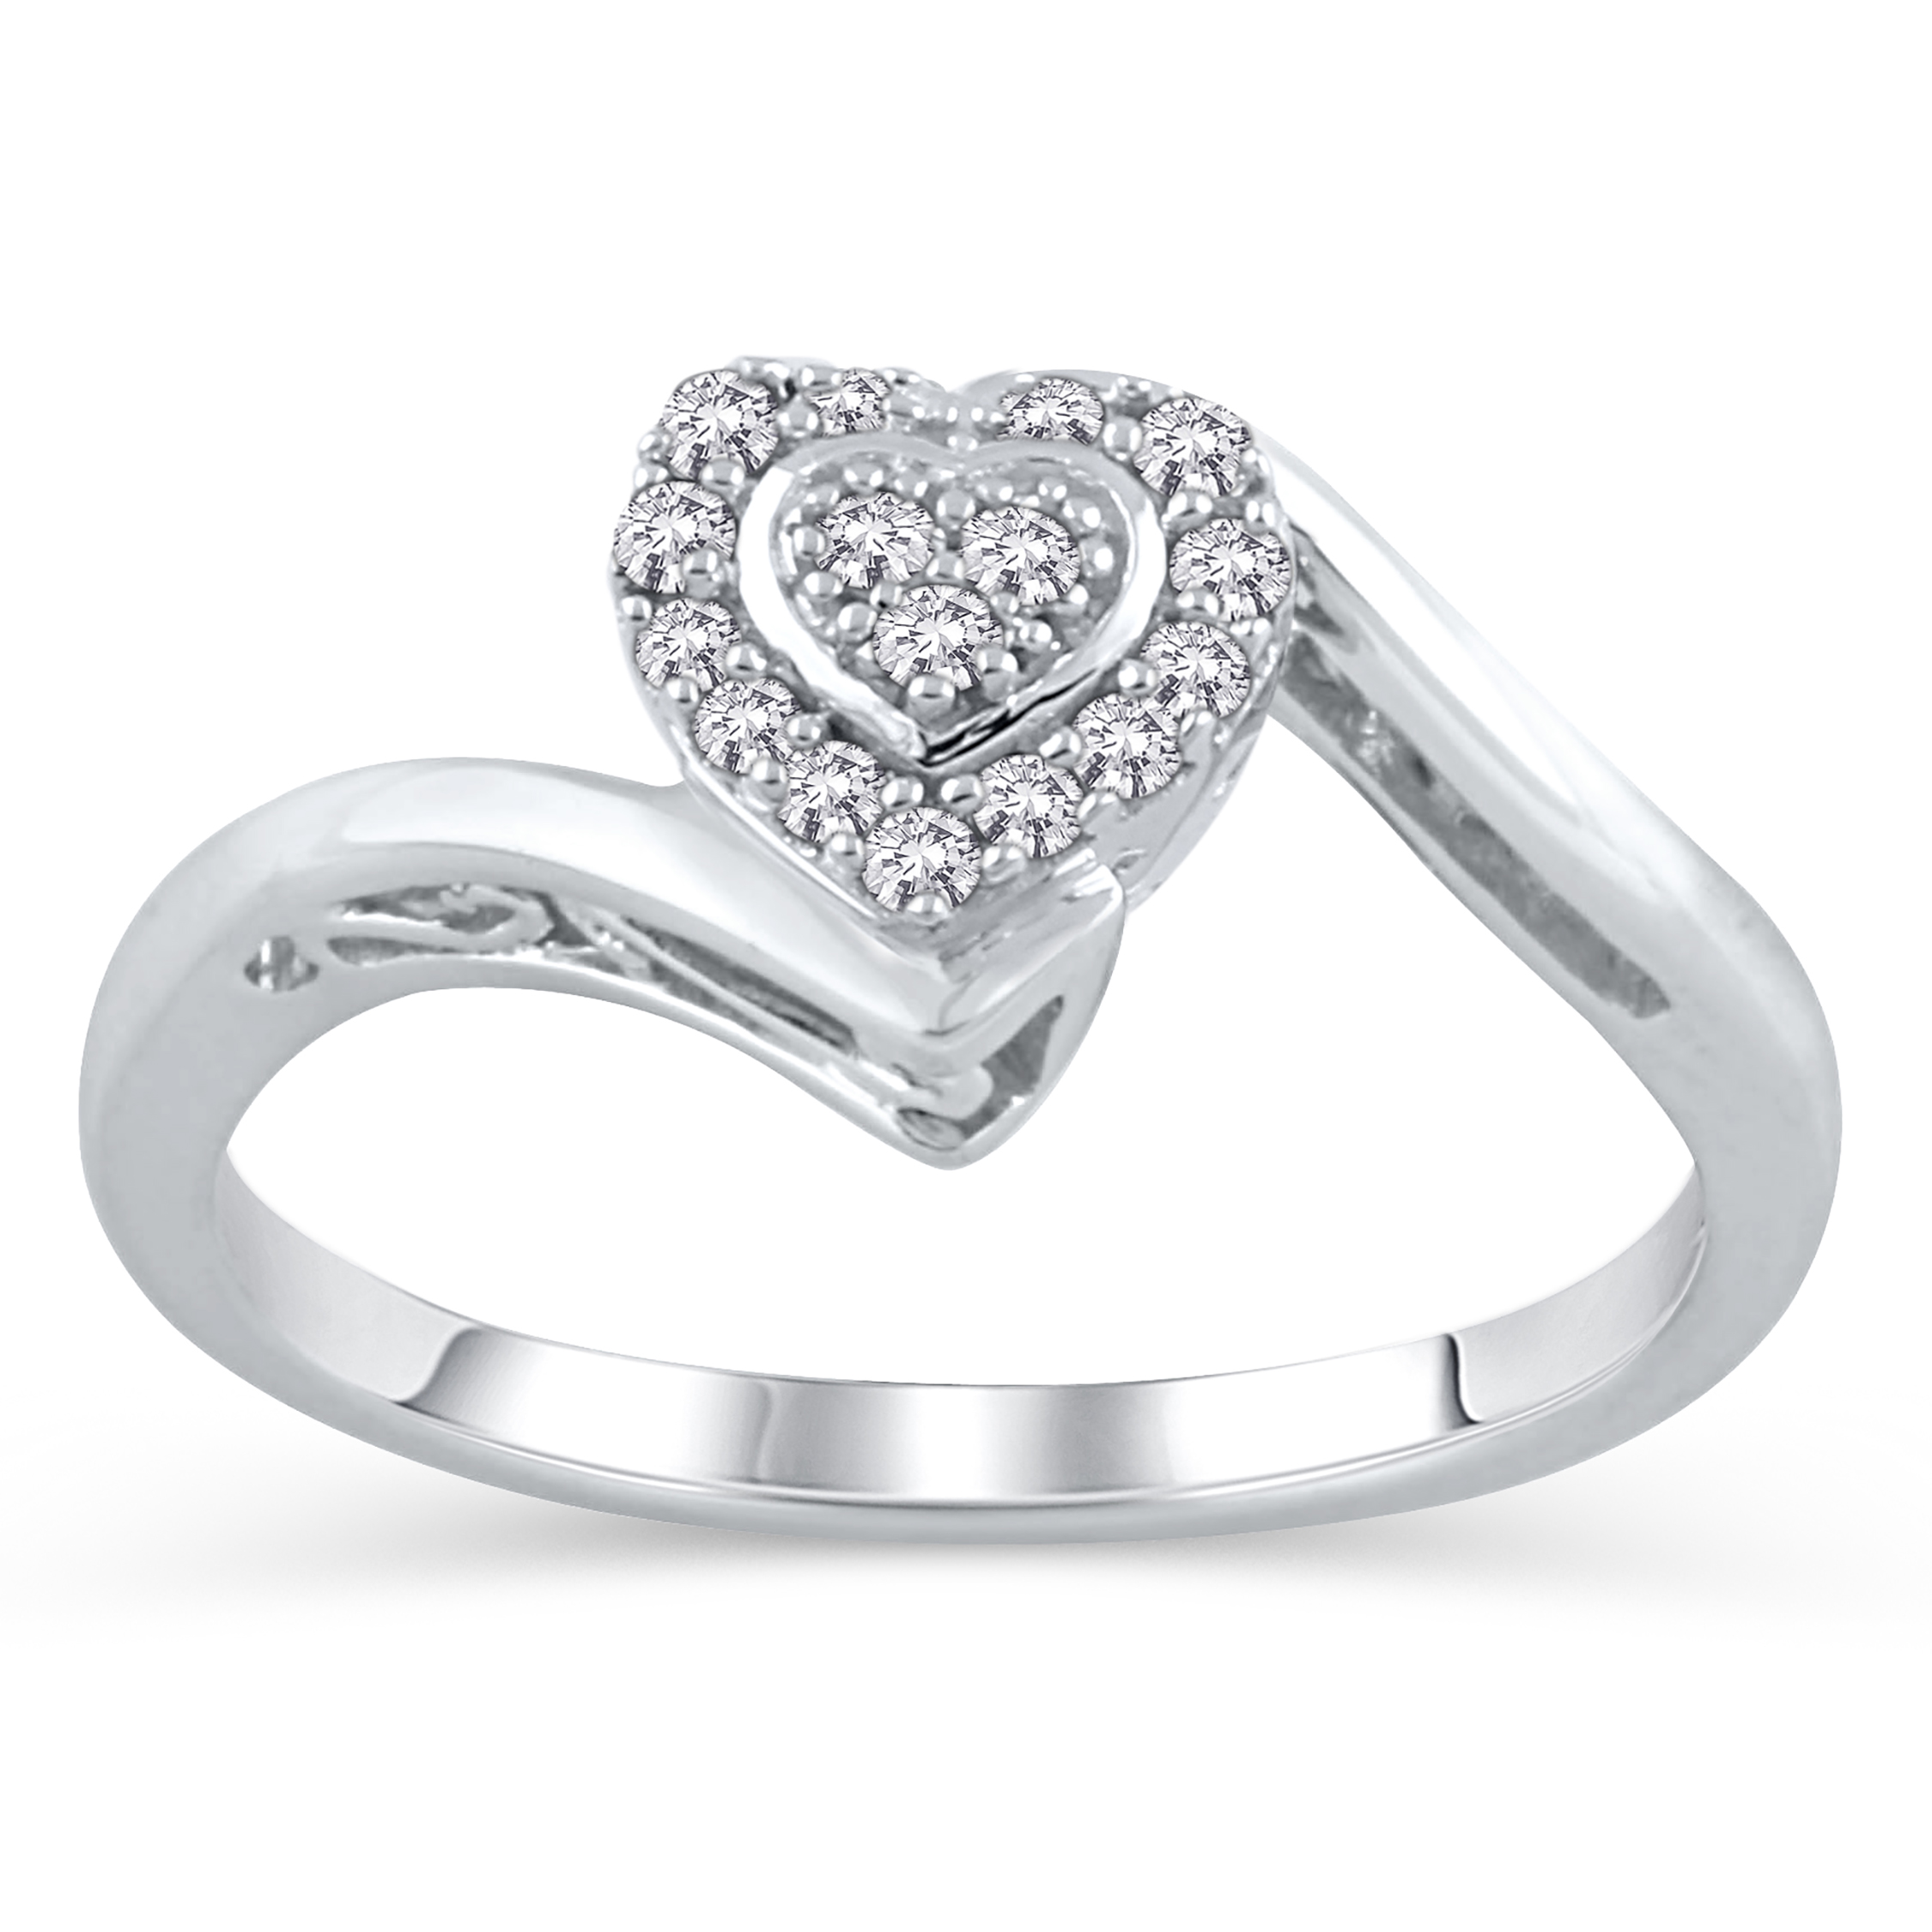 Purity Rings A purity ring is also known as the chastity ring or the abstinence rings. Wearing a purity ring is typically accompanied by practice of abstinence until marriage.[ Personalize these rings with your choice of Gemstone, Metal and Engravings. Choose the style that appeals to you.